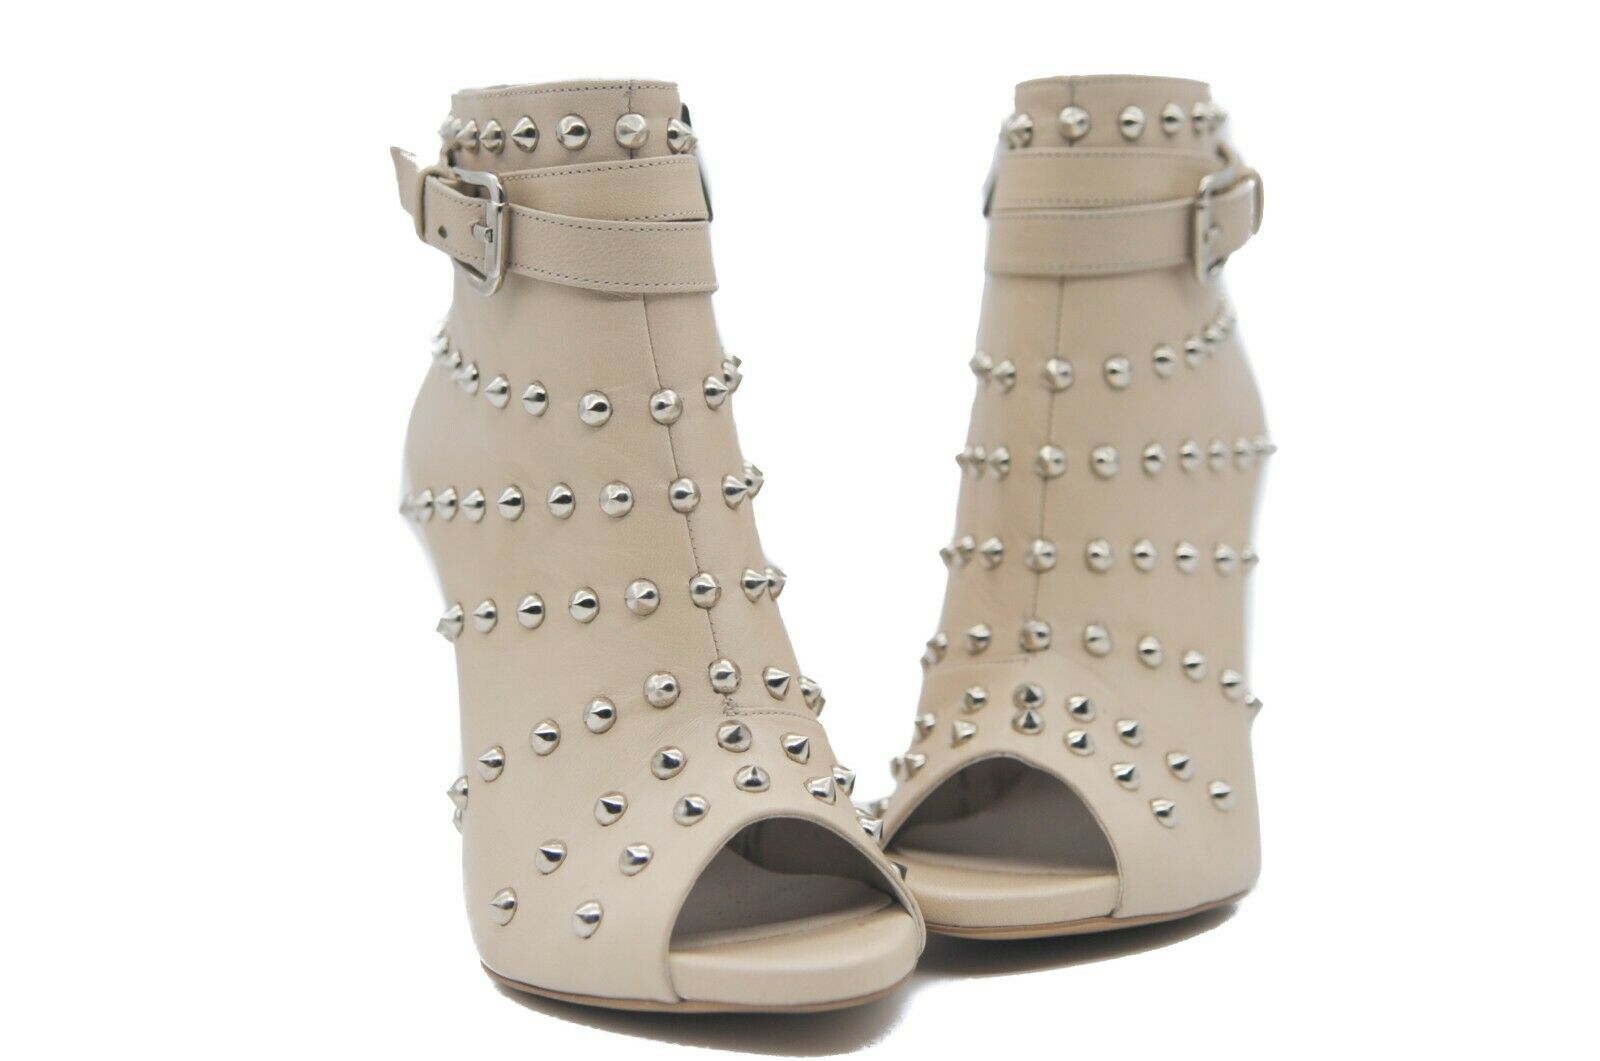 Goody2shoes Ladies' Light Caramel Leather Peep Toe shoes Boot with Silver Studs